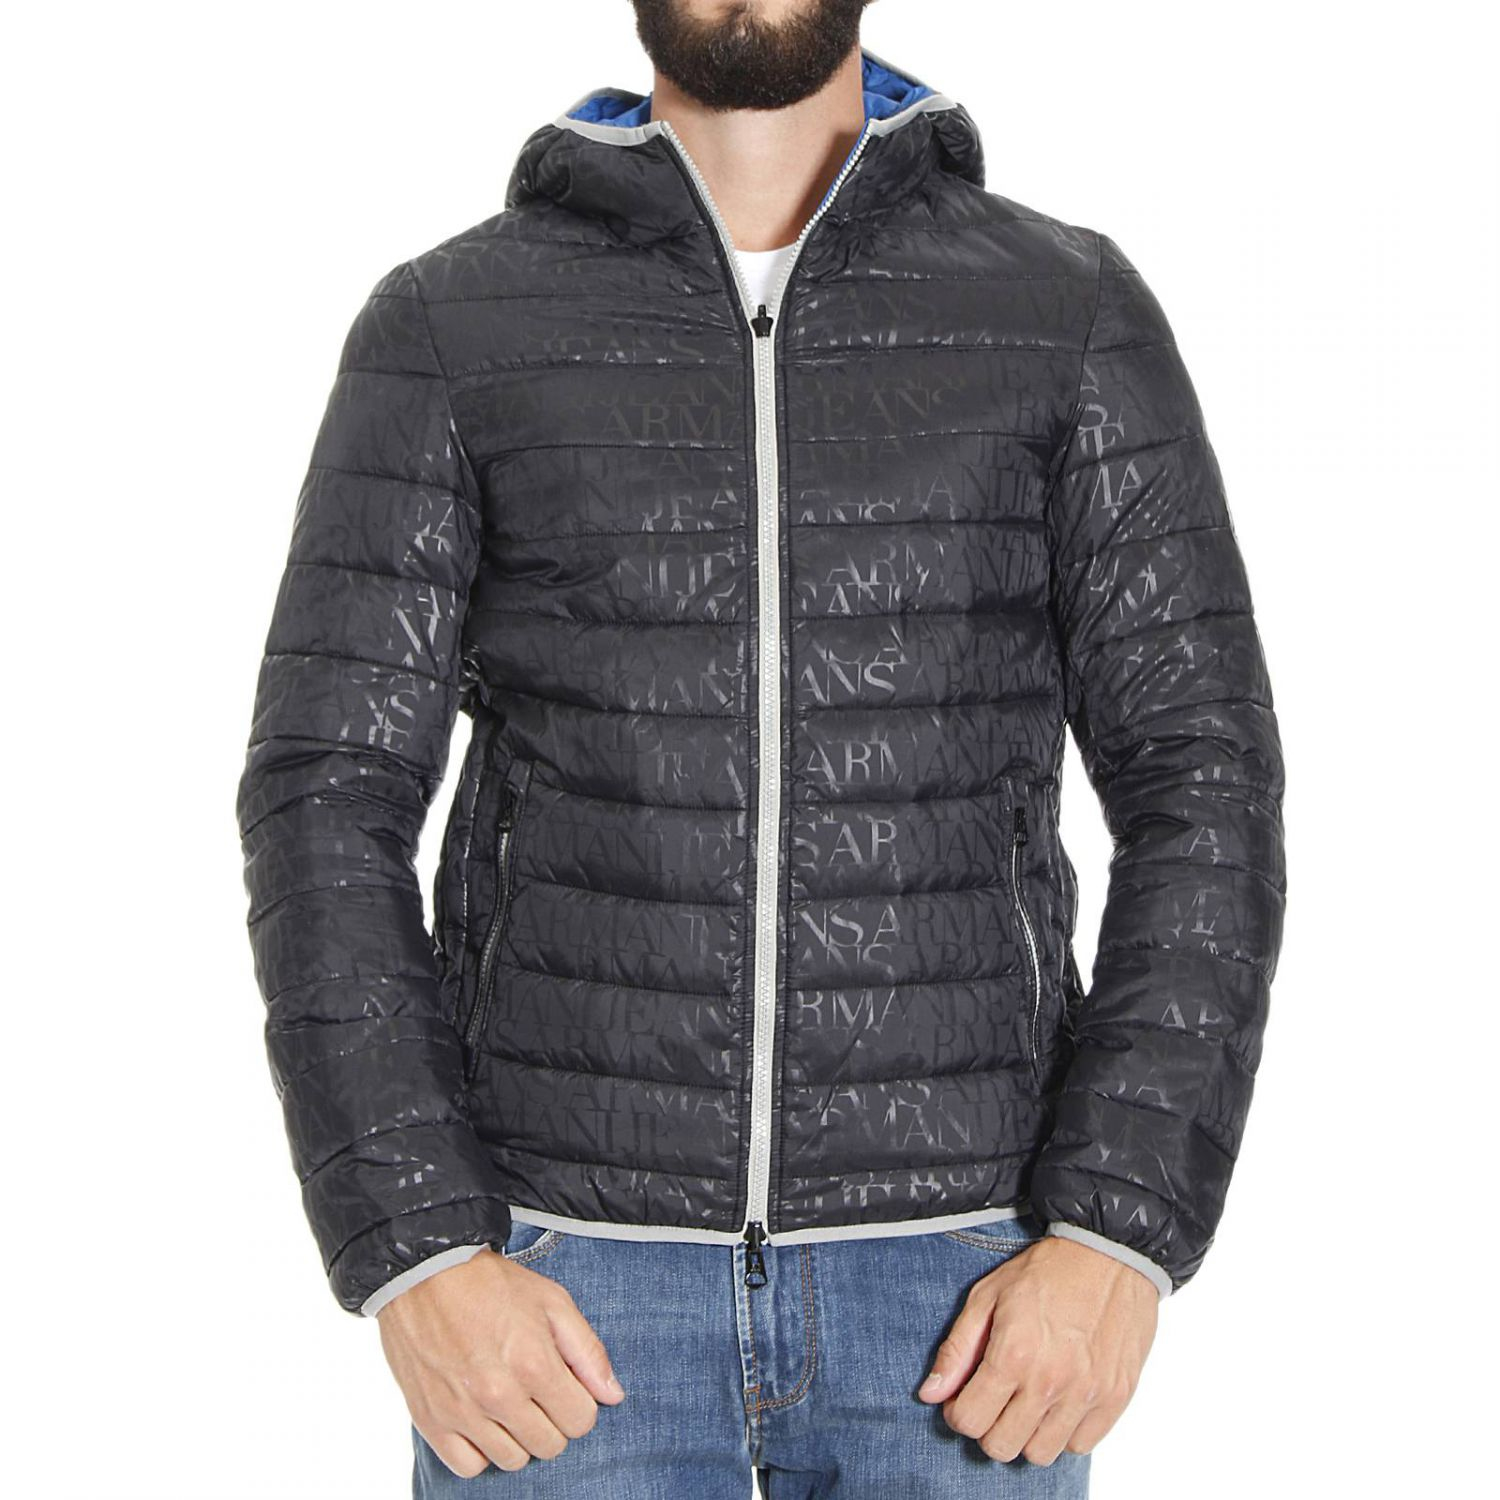 lyst armani jeans down jacket in black for men. Black Bedroom Furniture Sets. Home Design Ideas